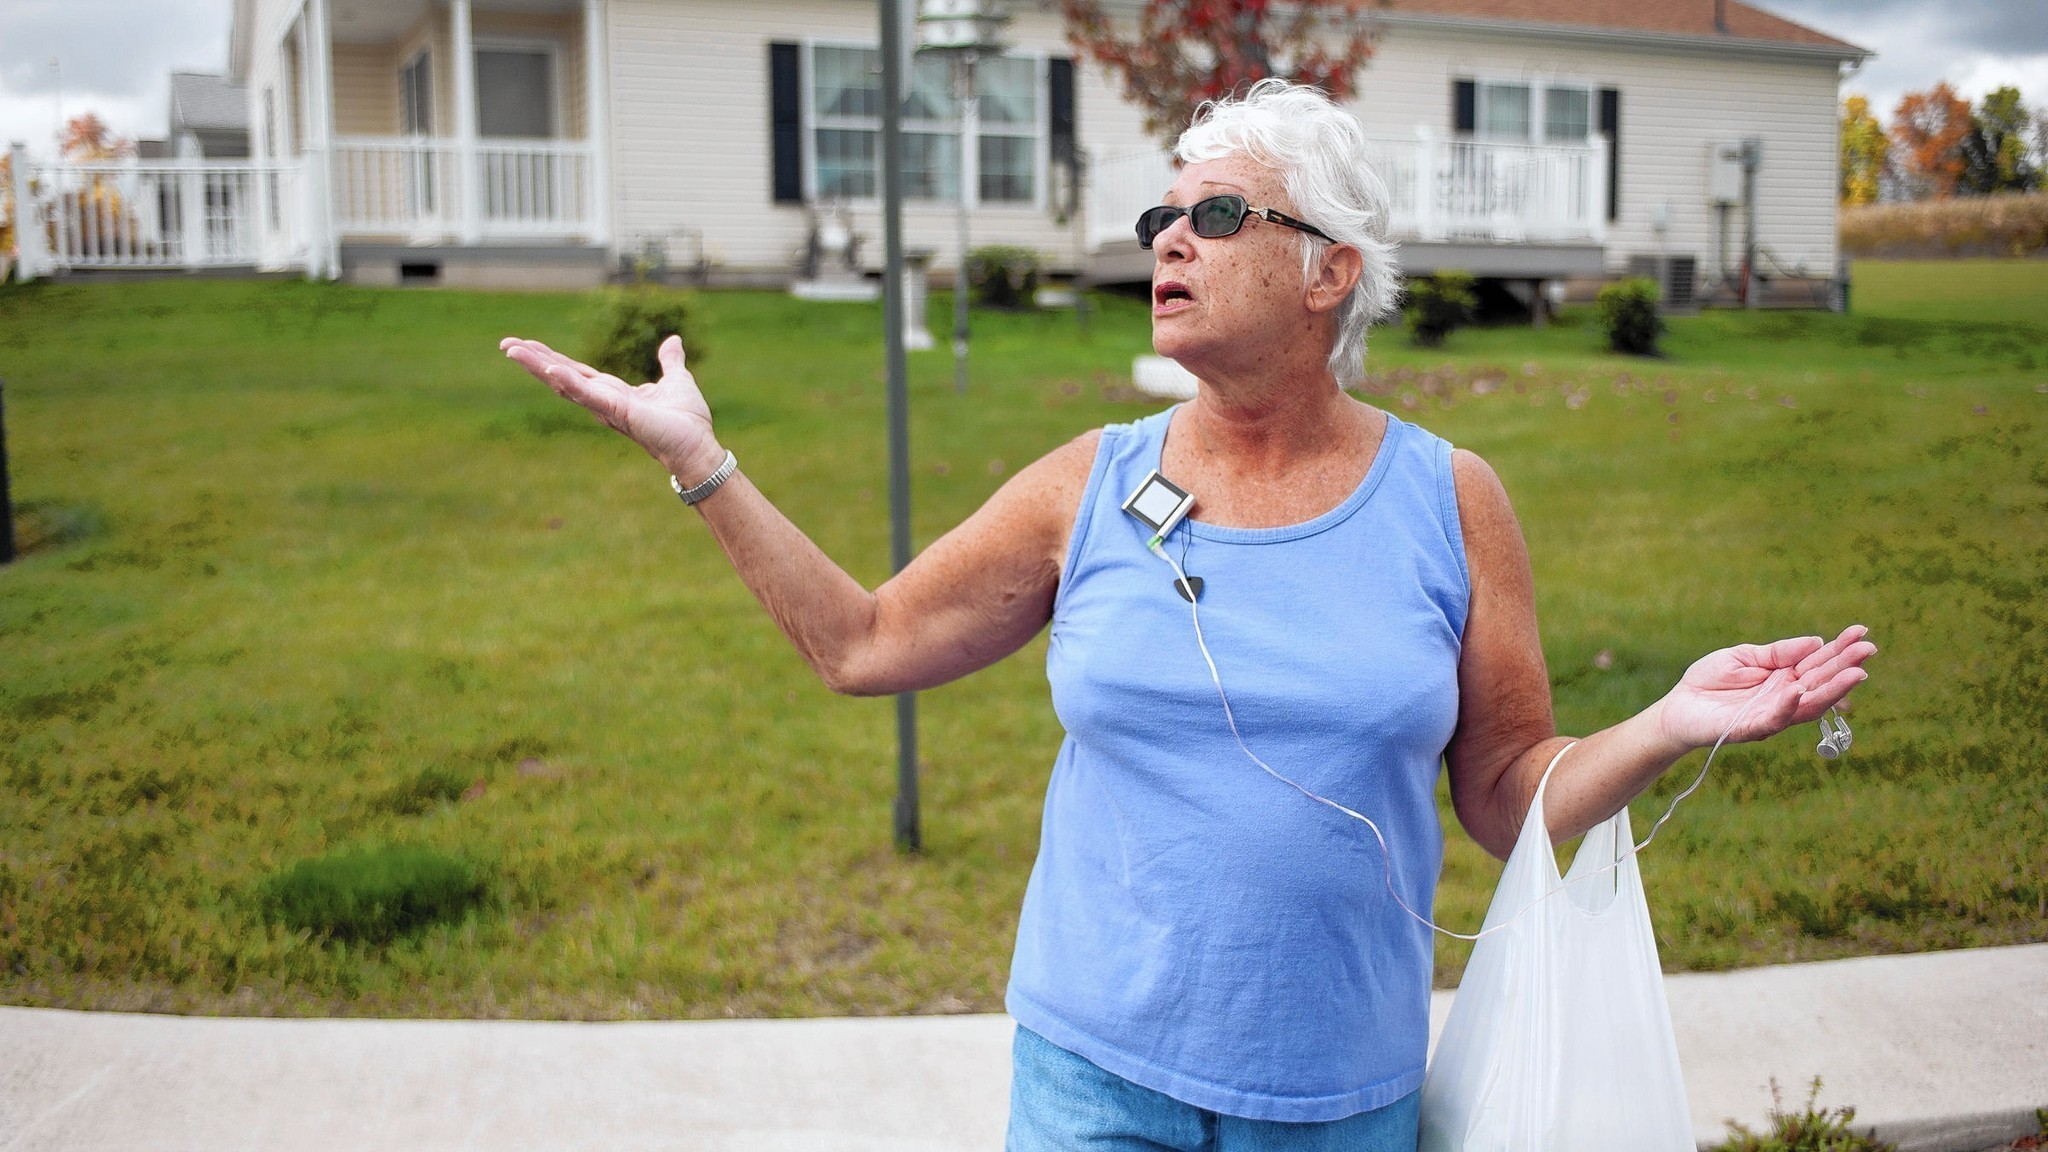 For active adult community lehigh valley remarkable, useful